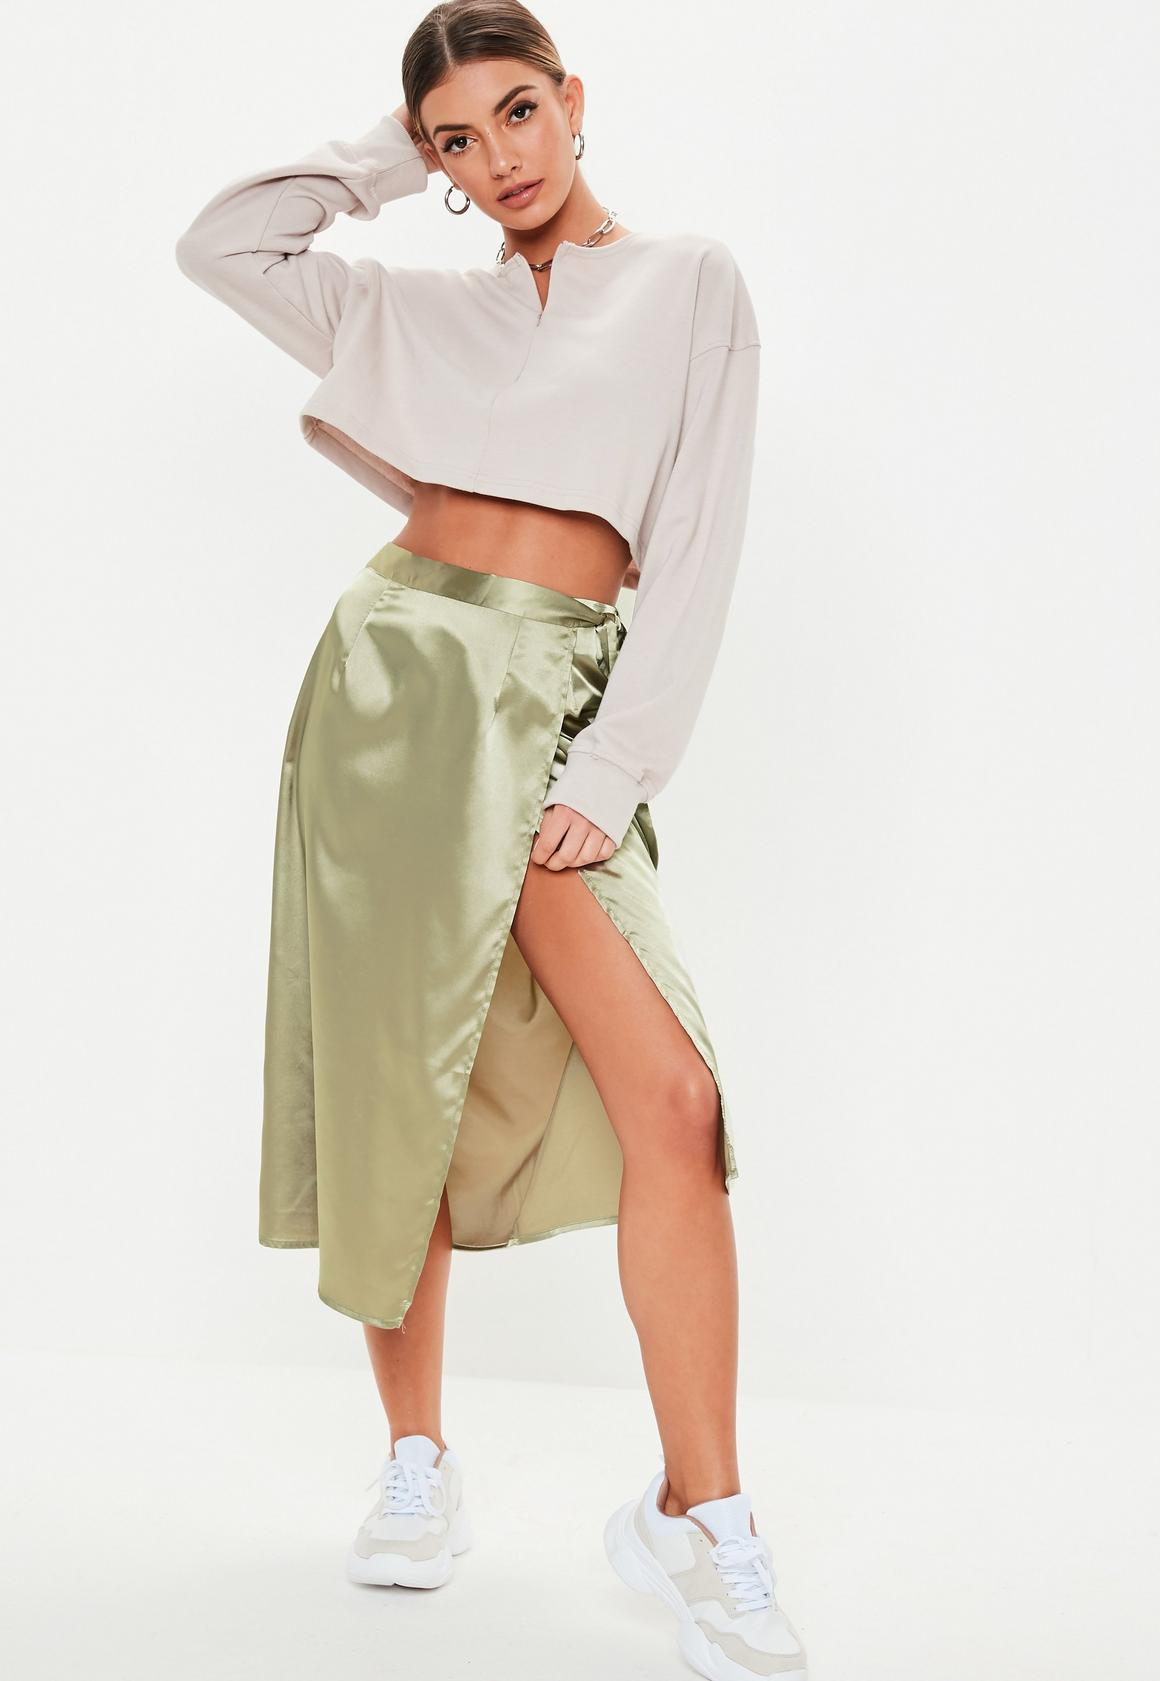 khaki satin wrap midi slip skirt - A midi skirt in khaki satin finish featuring a wrap front design and side tie belt fastening now priced at £12.50.